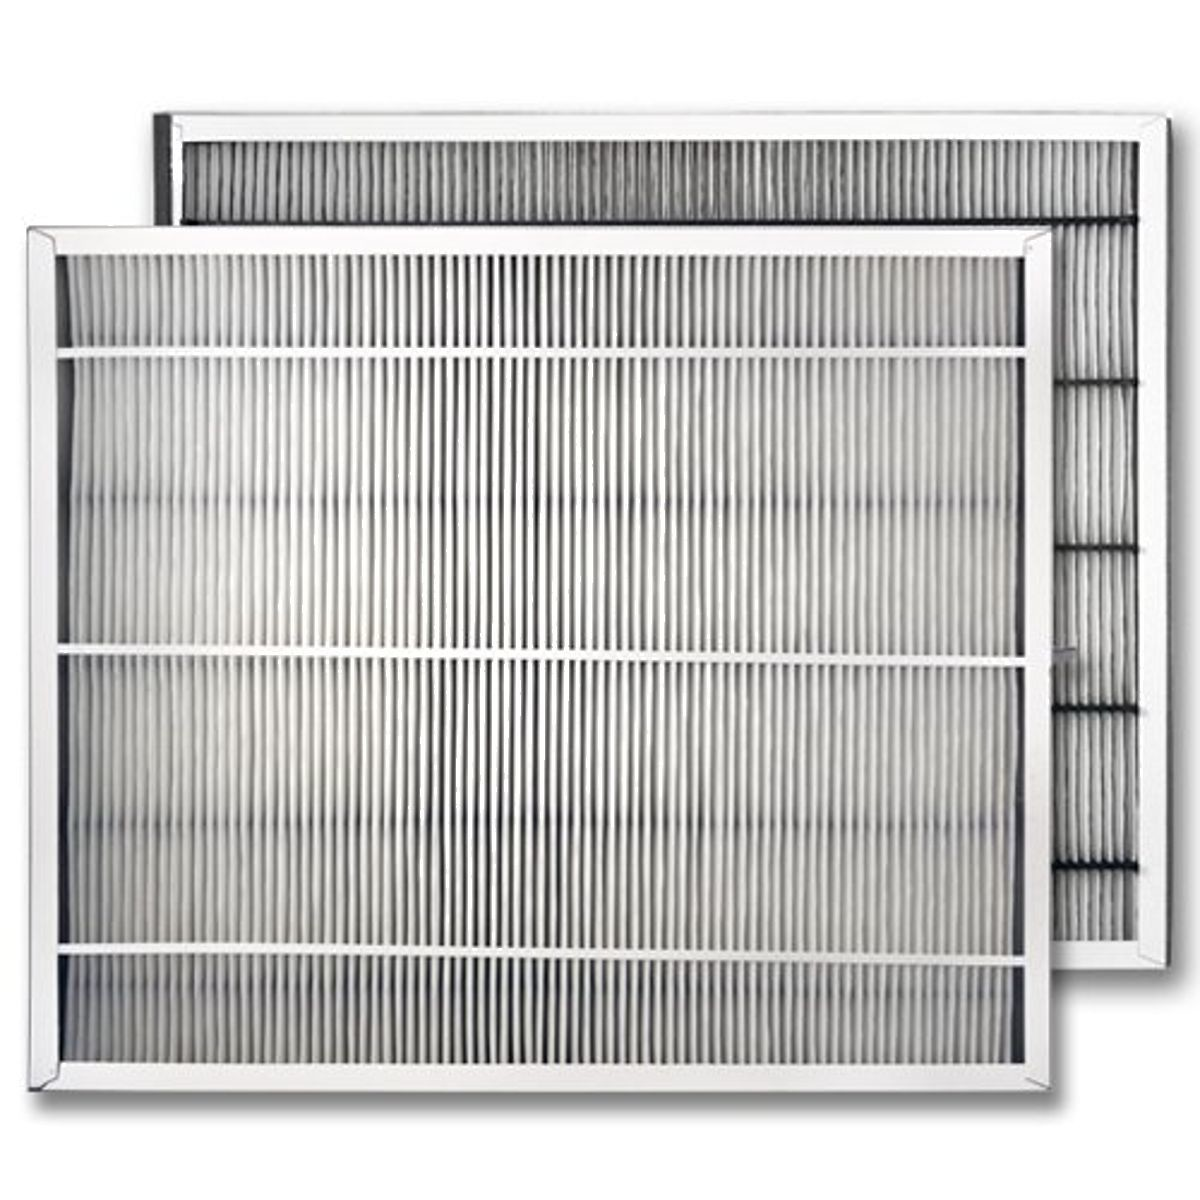 """Carrier® Infinity - GAPCCCAR2025 20"""" x 25"""" High Efficiency GAPA Replacement Filters for Furnaces"""